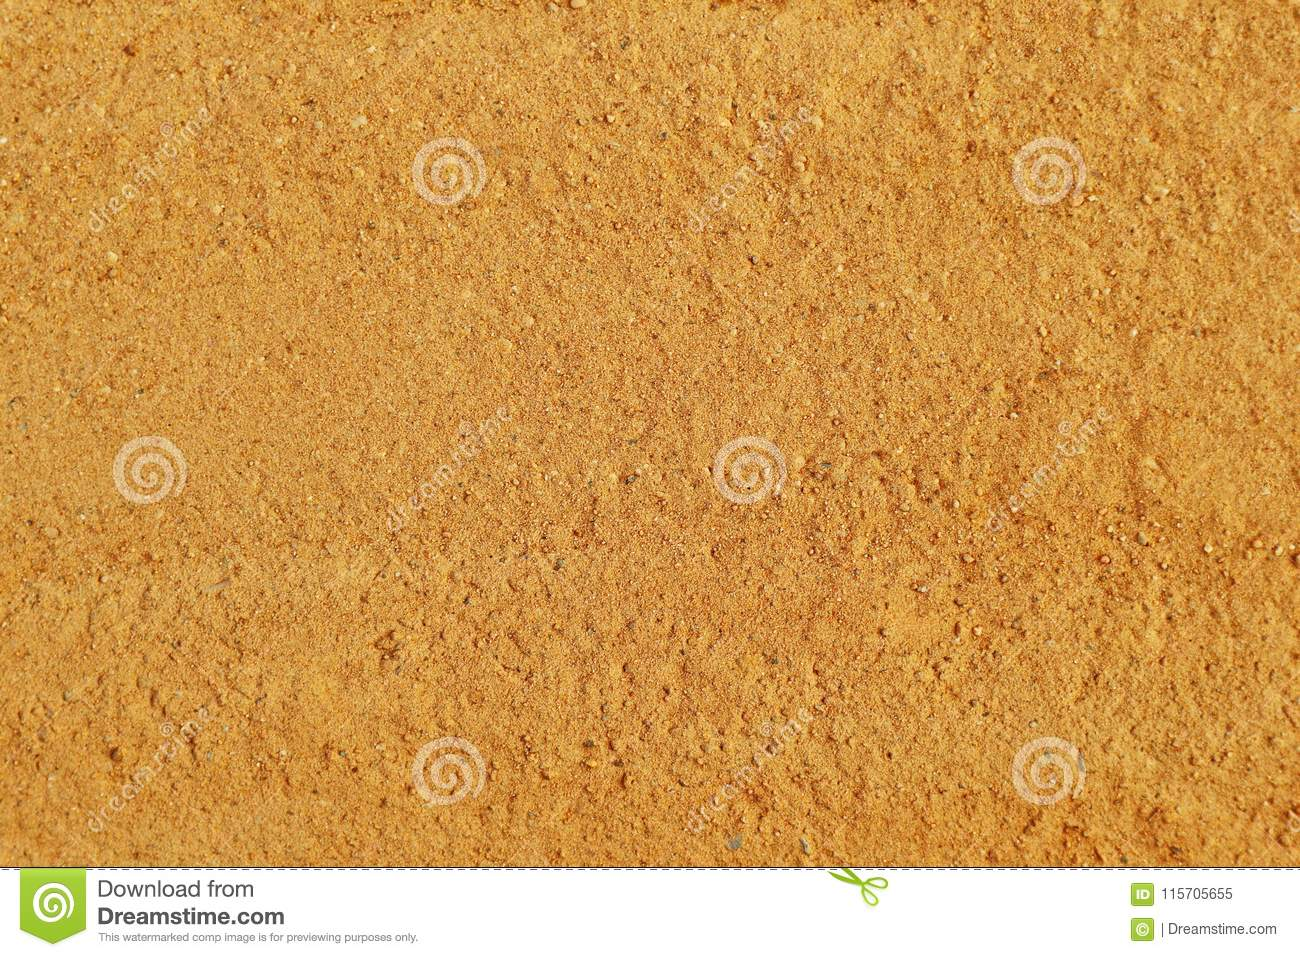 Red Dirt Background / Red Dirt Texture